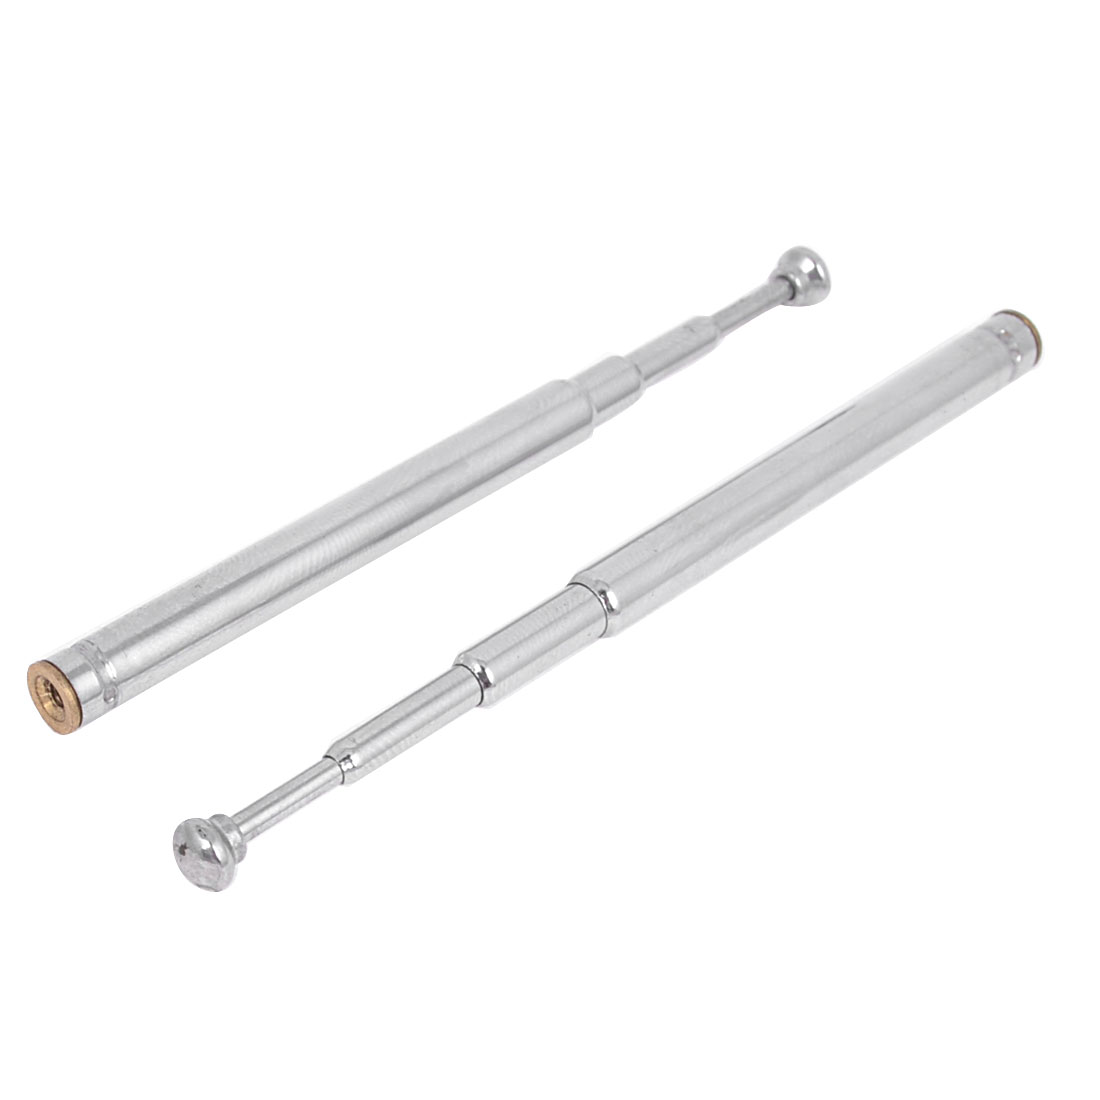 "2 Pcs Replacement 4 Sections FM Radio TV Rod Telescopic Antenna Aerial 5.7"" Long"